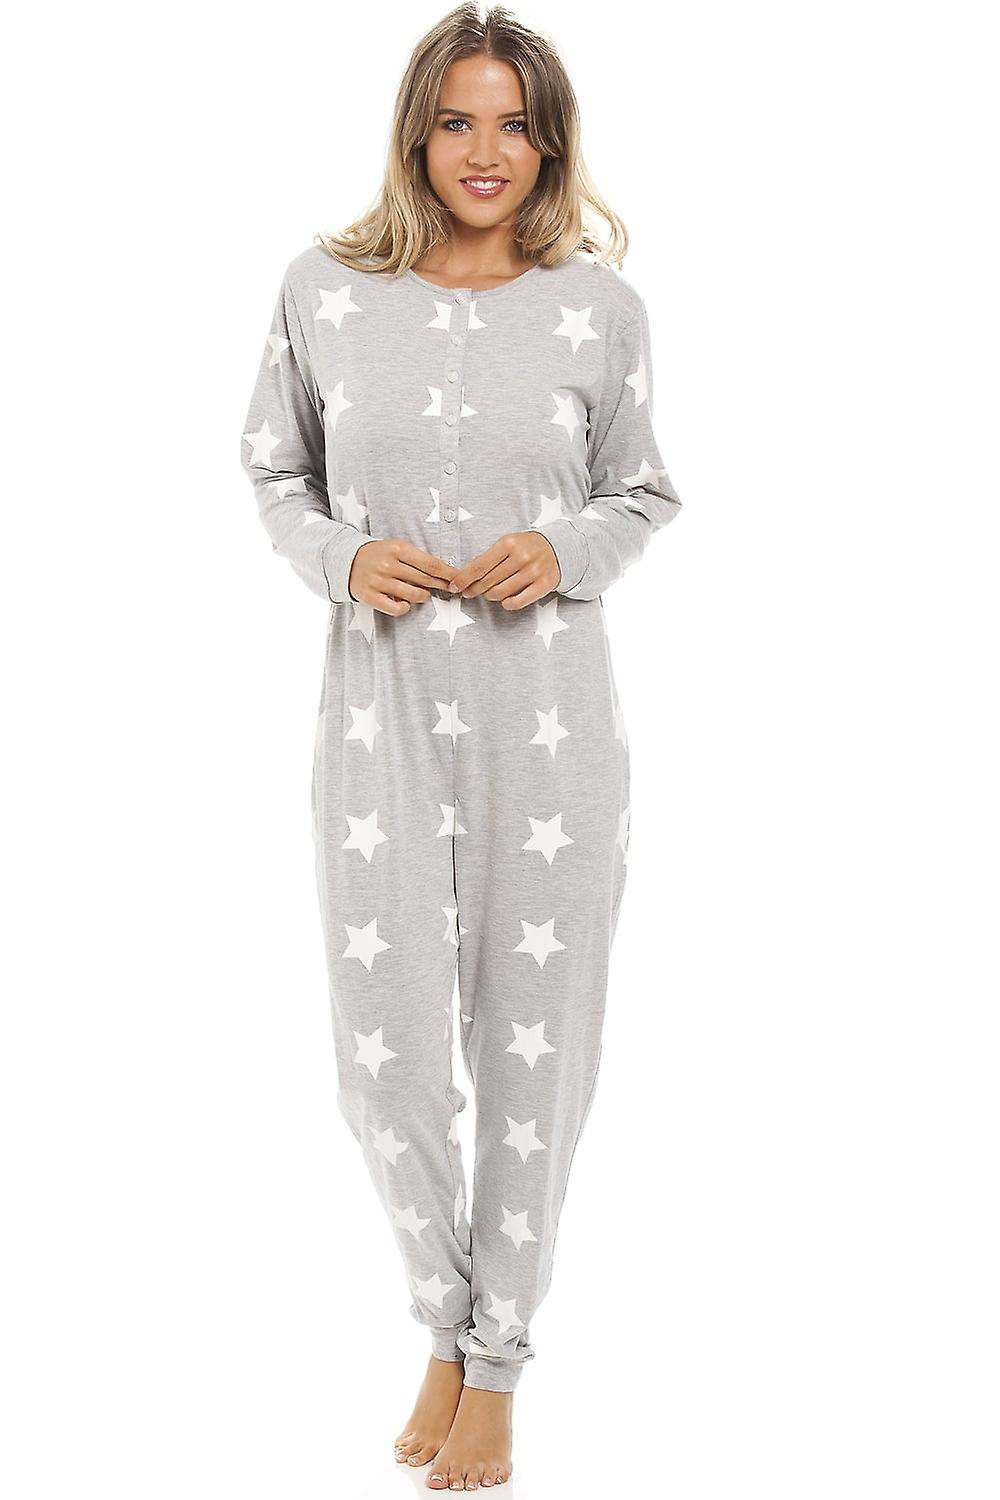 Camille Grey Full Cotton White Star Print All In One